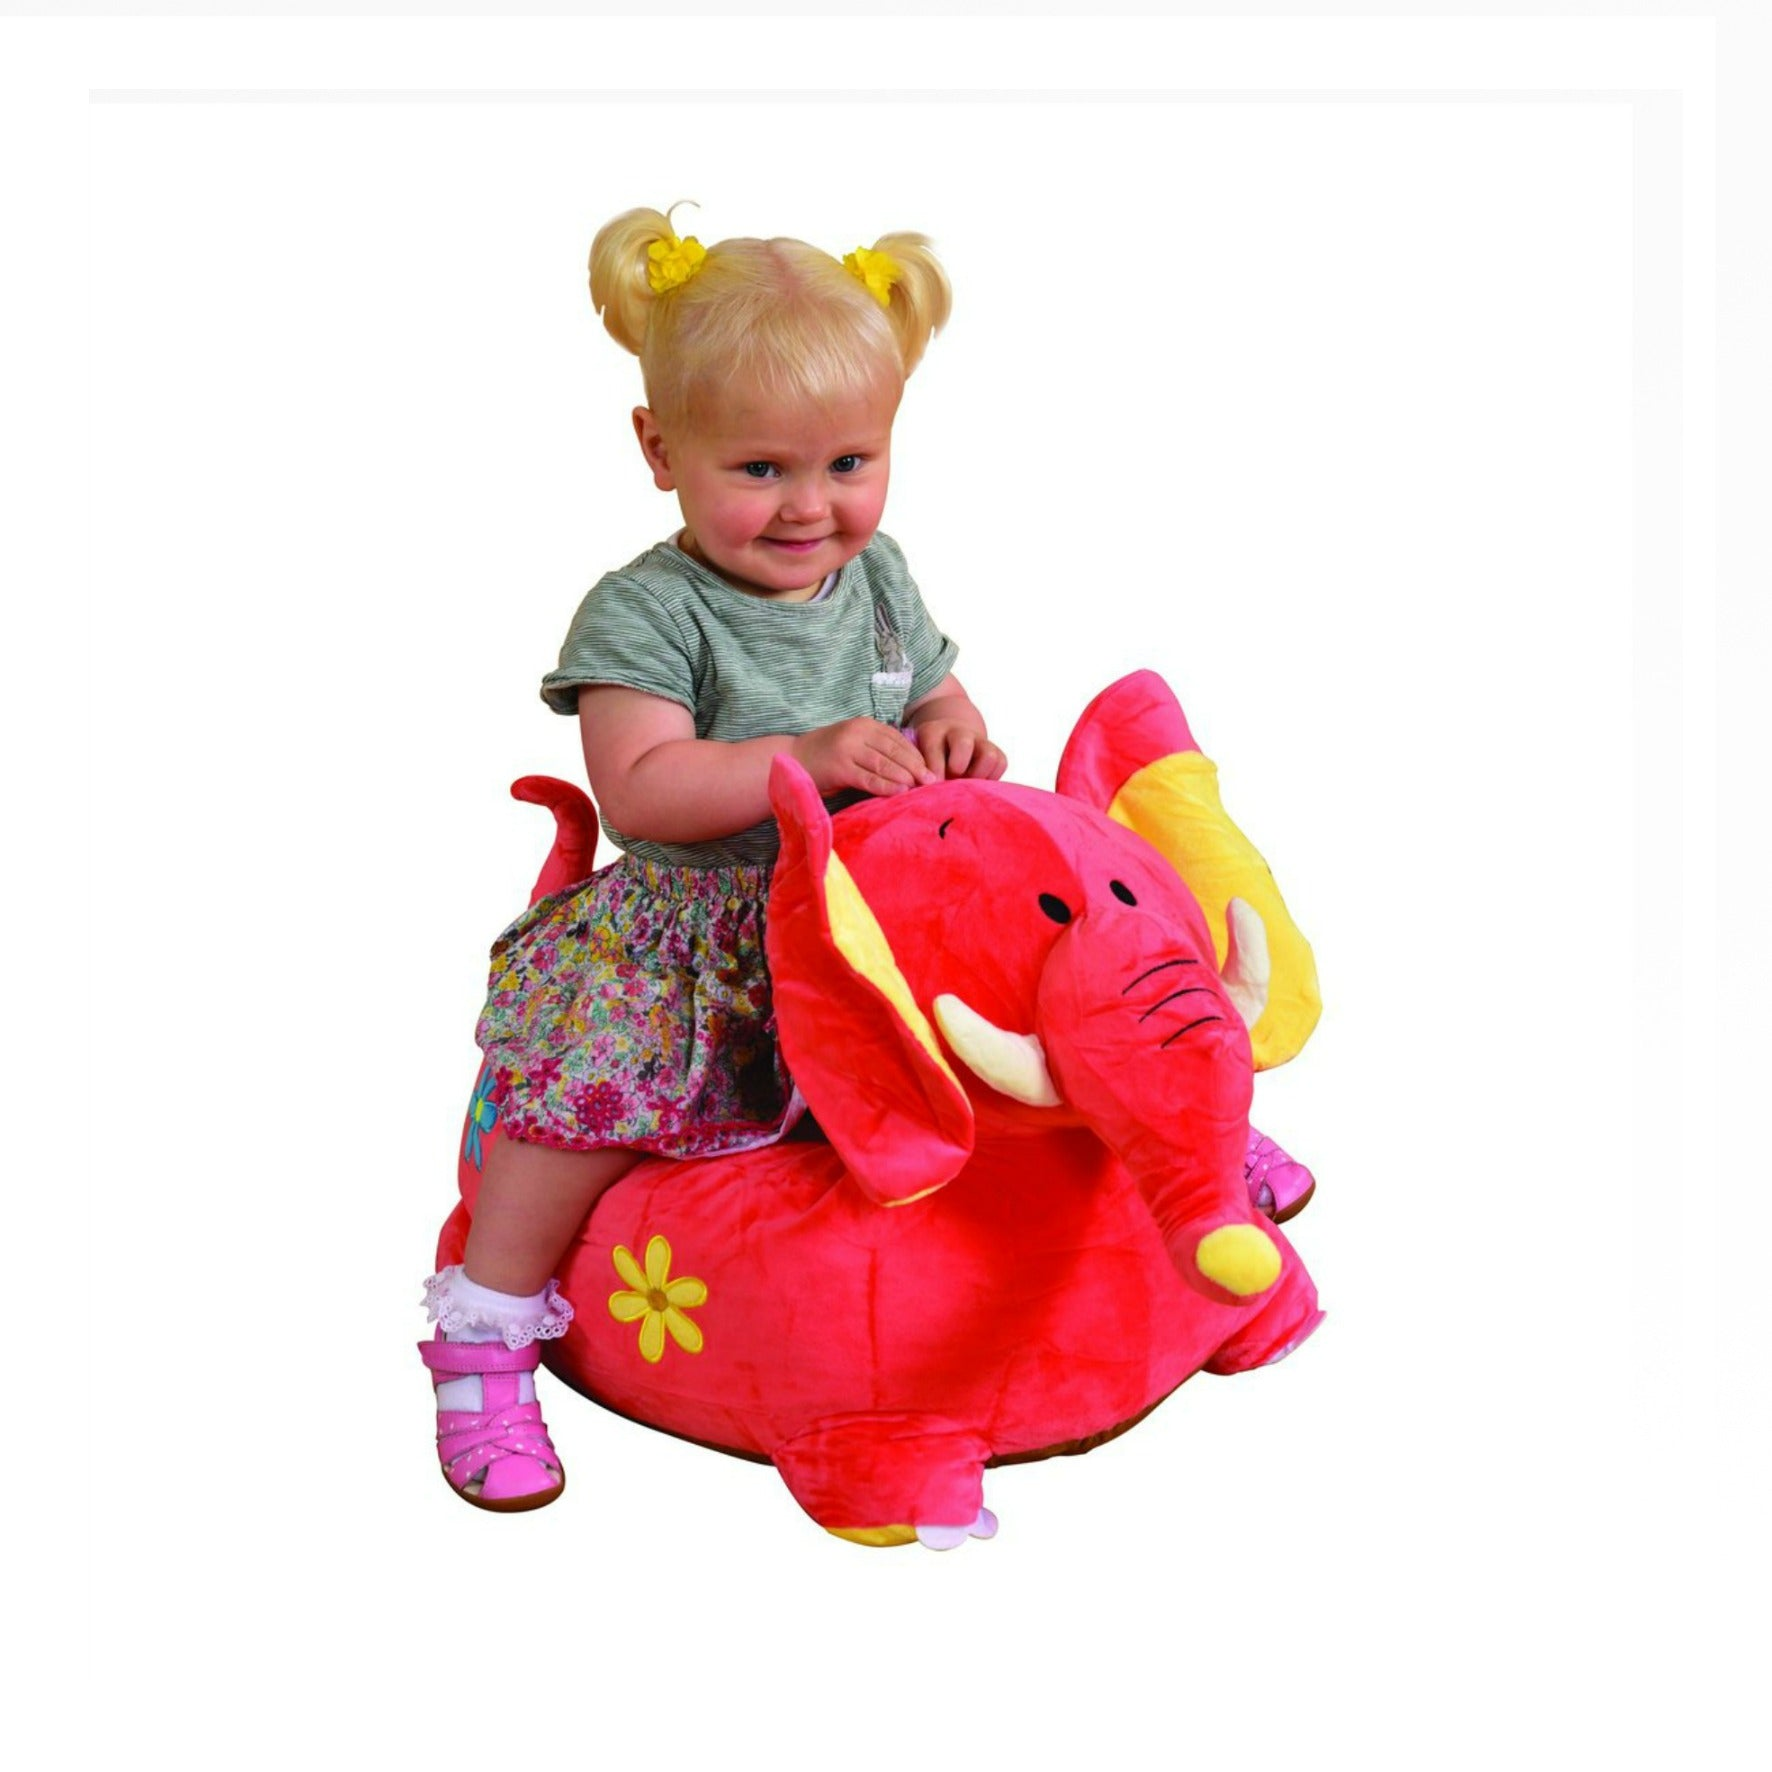 Plush Dragon Sofa Riding Chair (Pink), Baby & Toddler by Low Cost Gifts